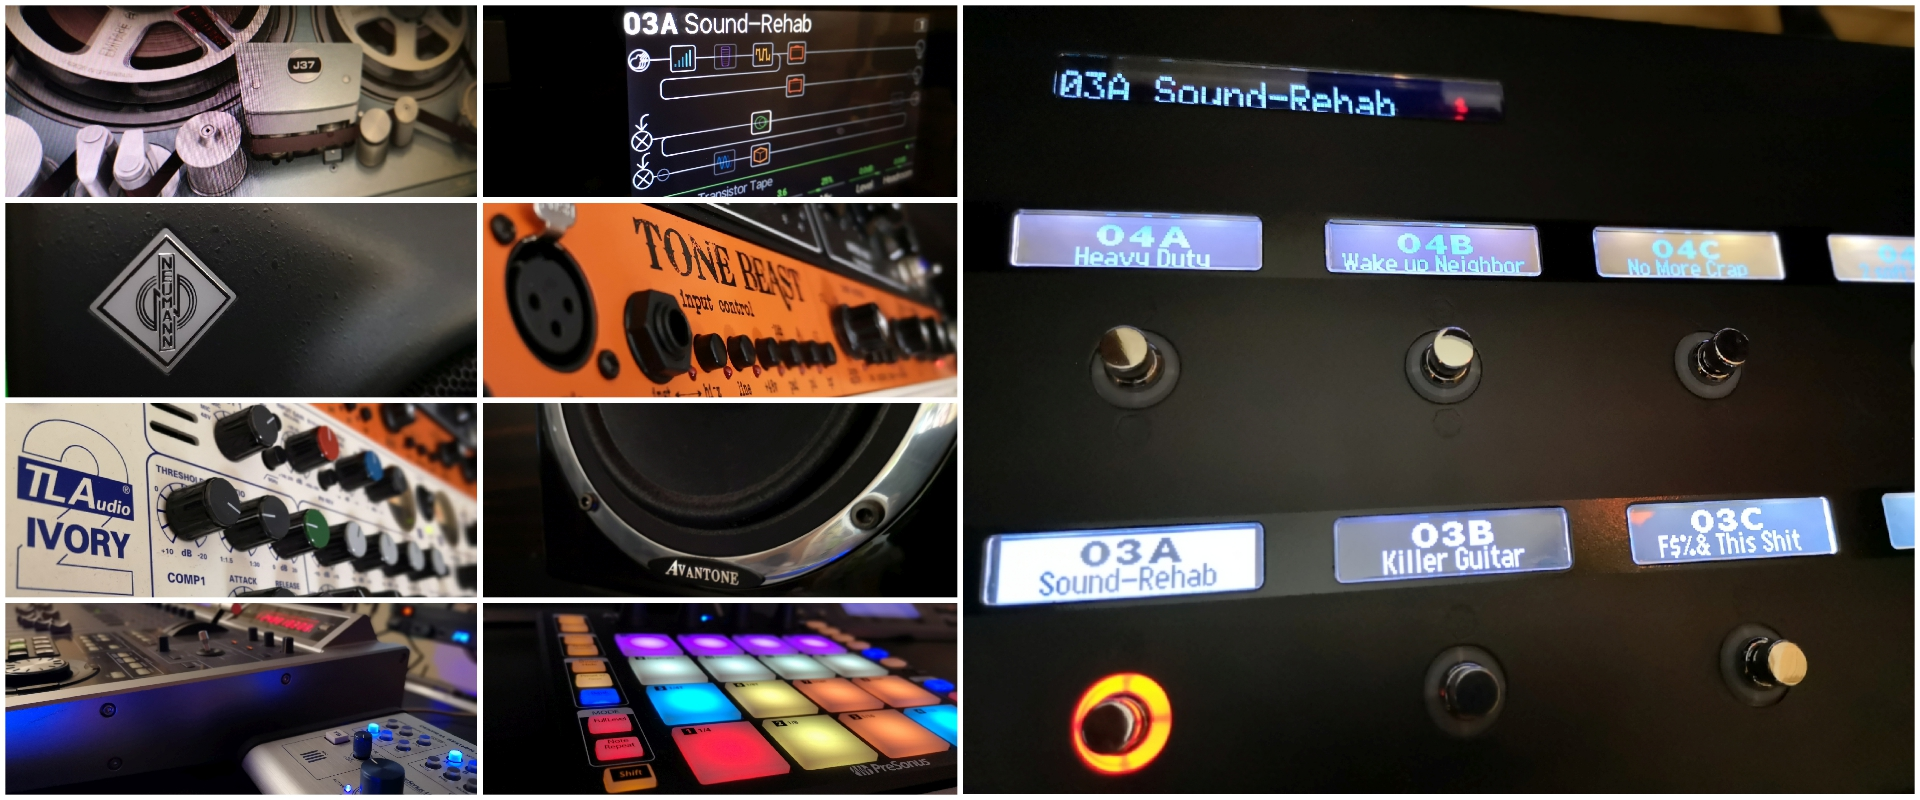 Gear Selection @Sound-Rehab